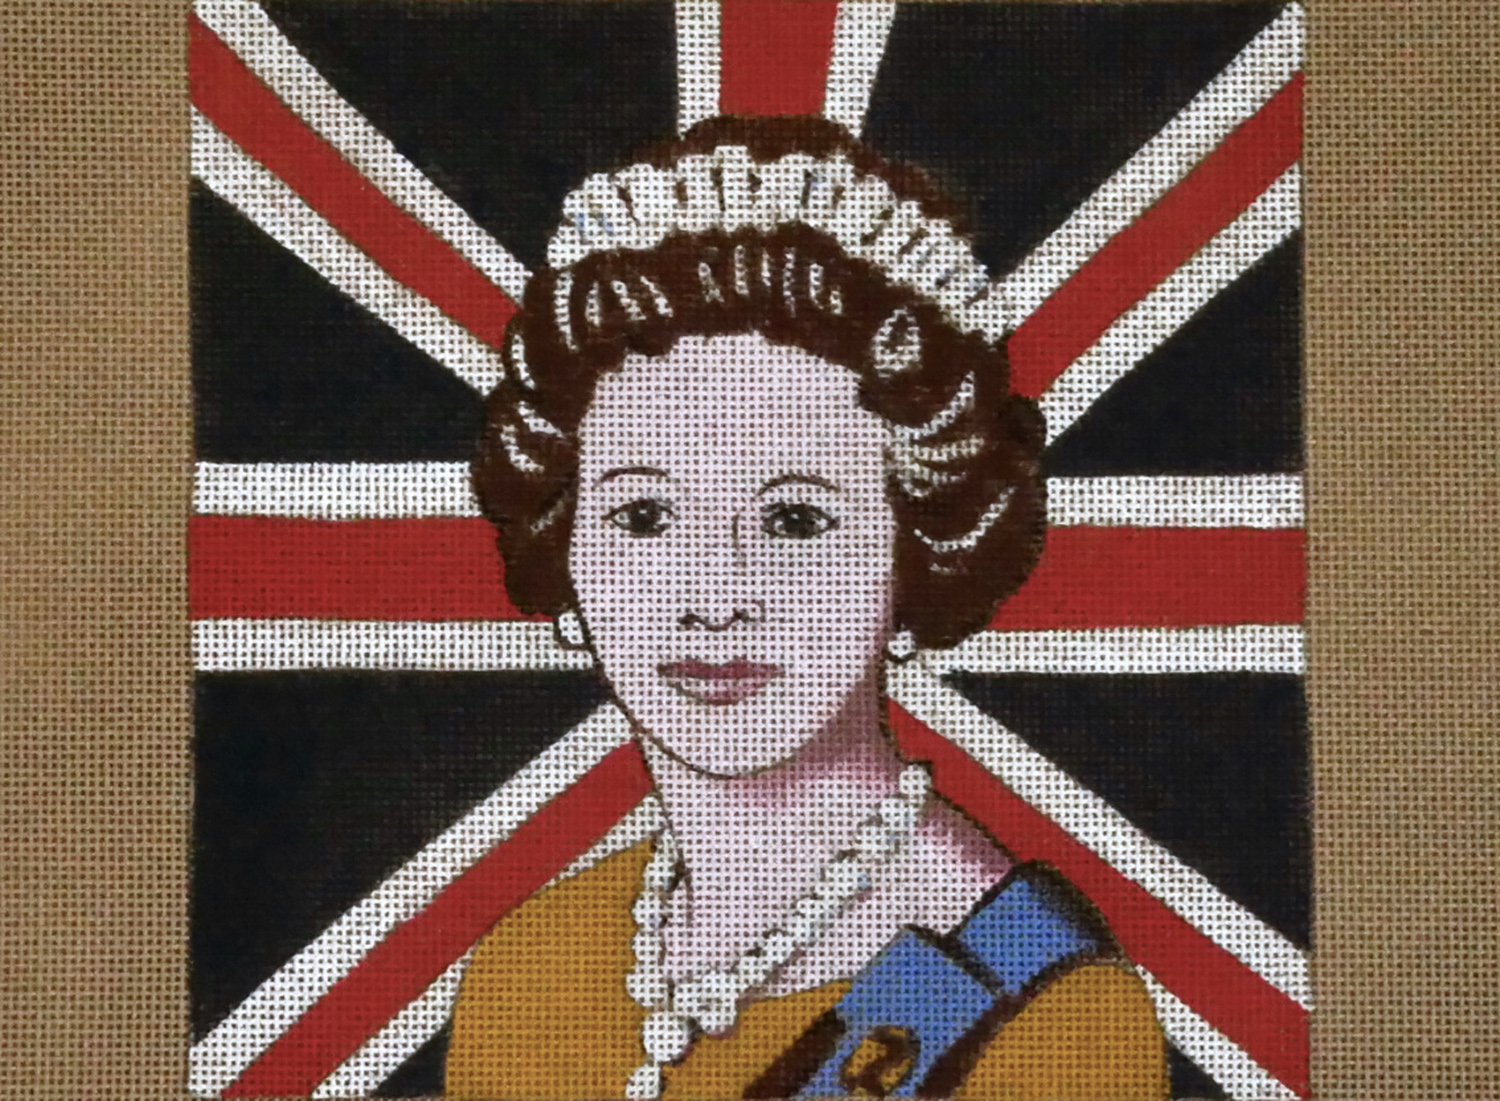 Queen with Union Jack